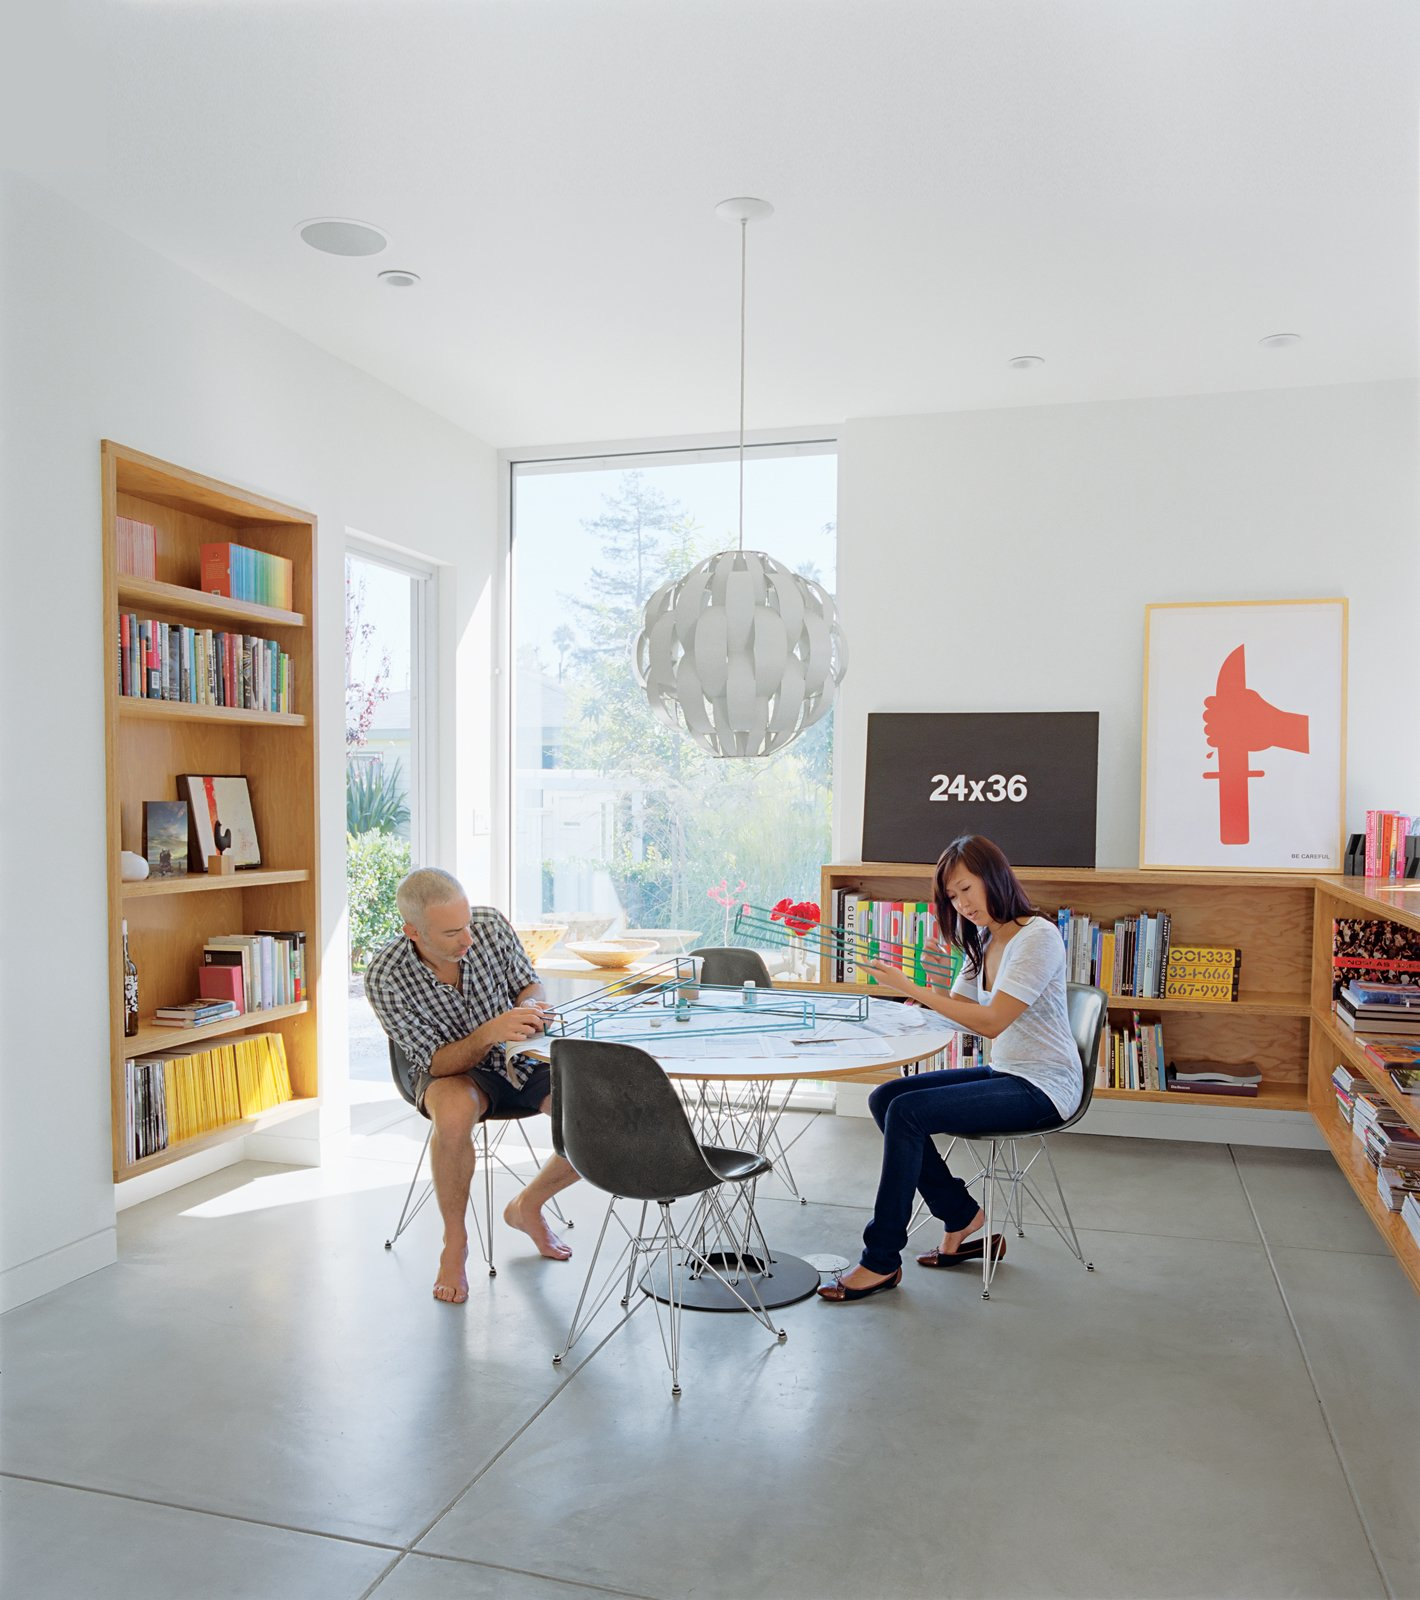 "The dining room is meant to be a flexible space for eating or dancing. ""One of the most important things for me,"" explains Grunbaum, ""is how a house feels. It has to be a place where you don't want to leave."" The Cyclone table is by Isamu Noguchi for Knoll and the pendant lamp is by Lightoiler. Daft Punk Could Play at This House - Photo 3 of 11"